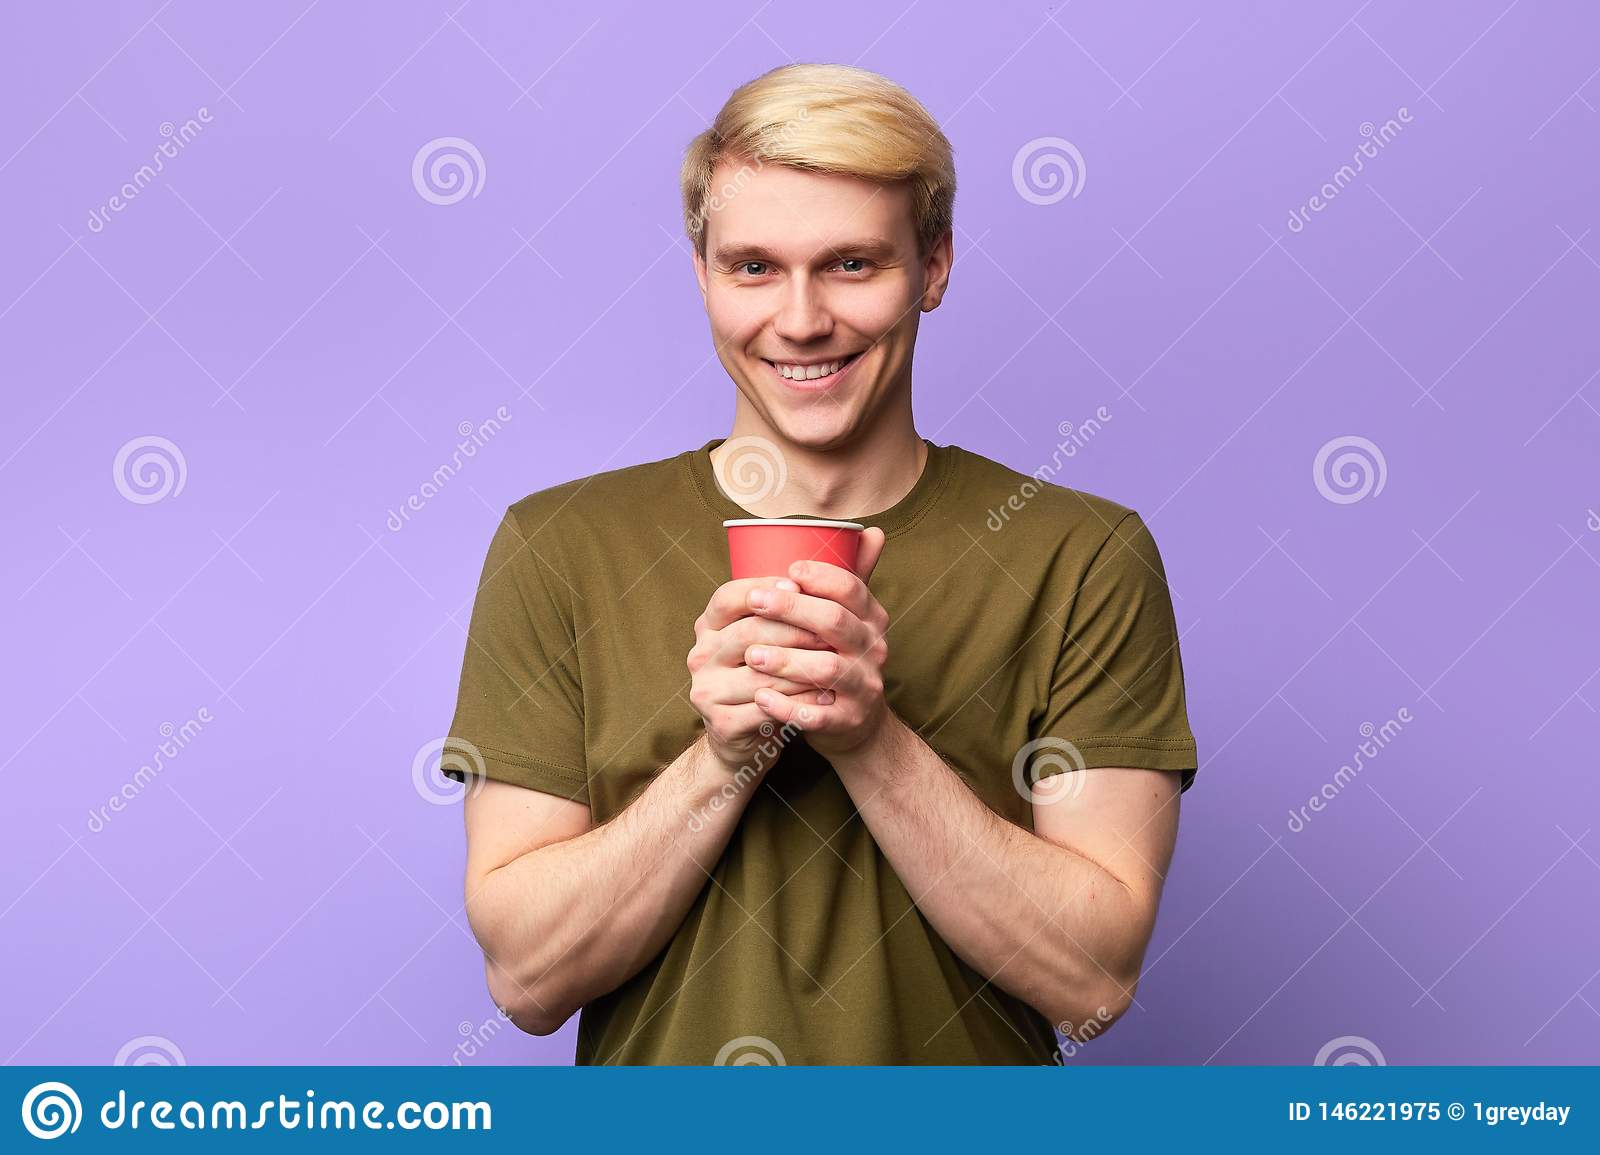 Positive happy young handsome man looking at camera and holding plastic cup.